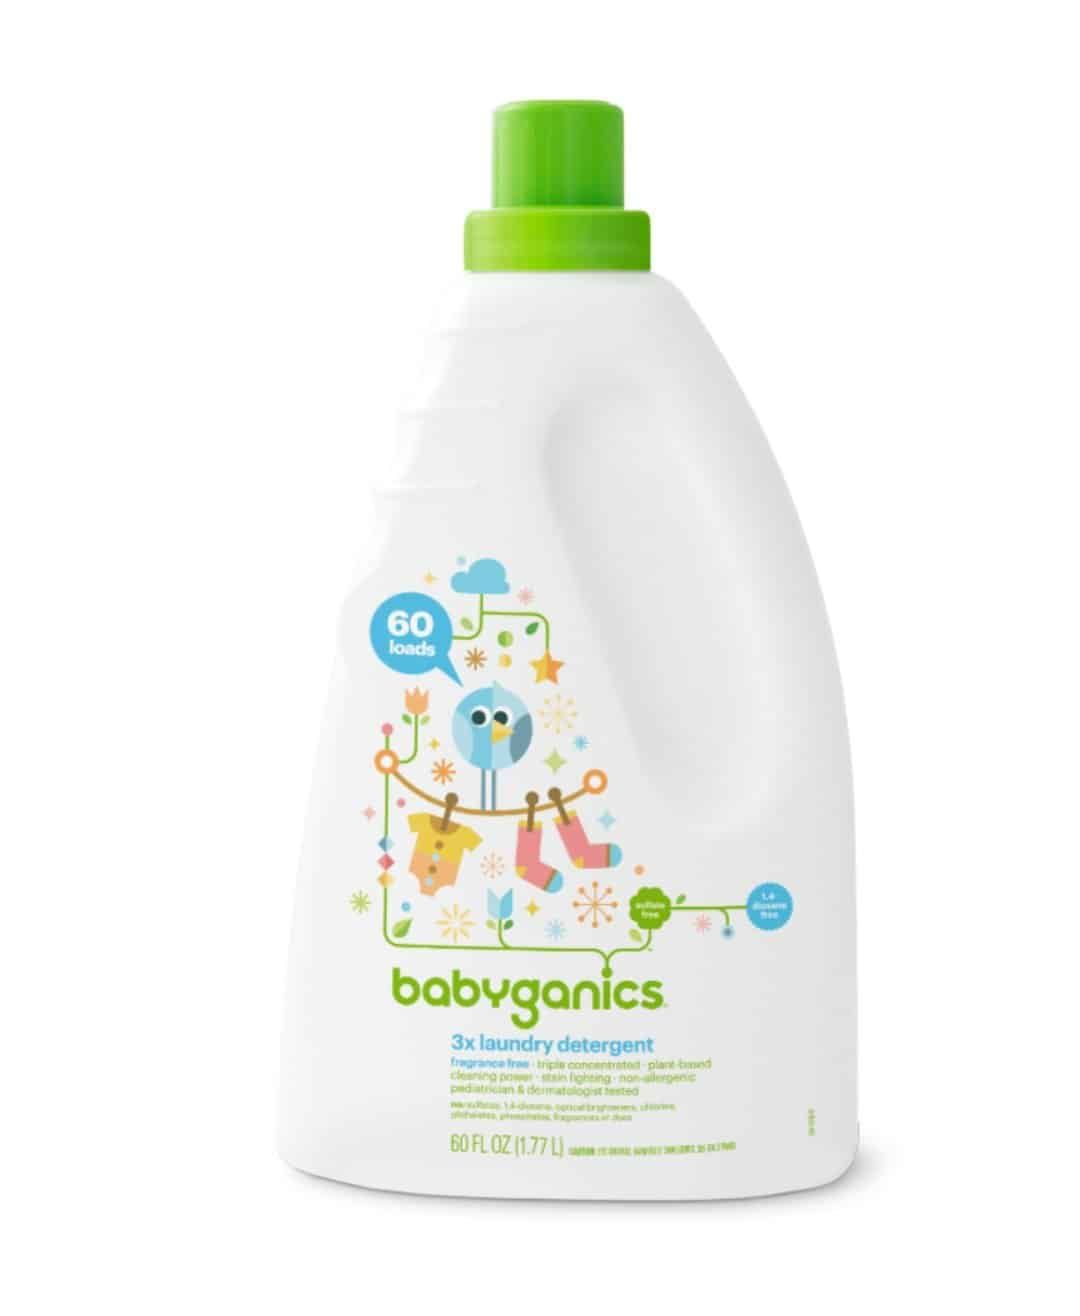 Best Laundry Detergent For Babies With Sensitive Skin Baby Detergent Baby Laundry Detergent Best Laundry Detergent